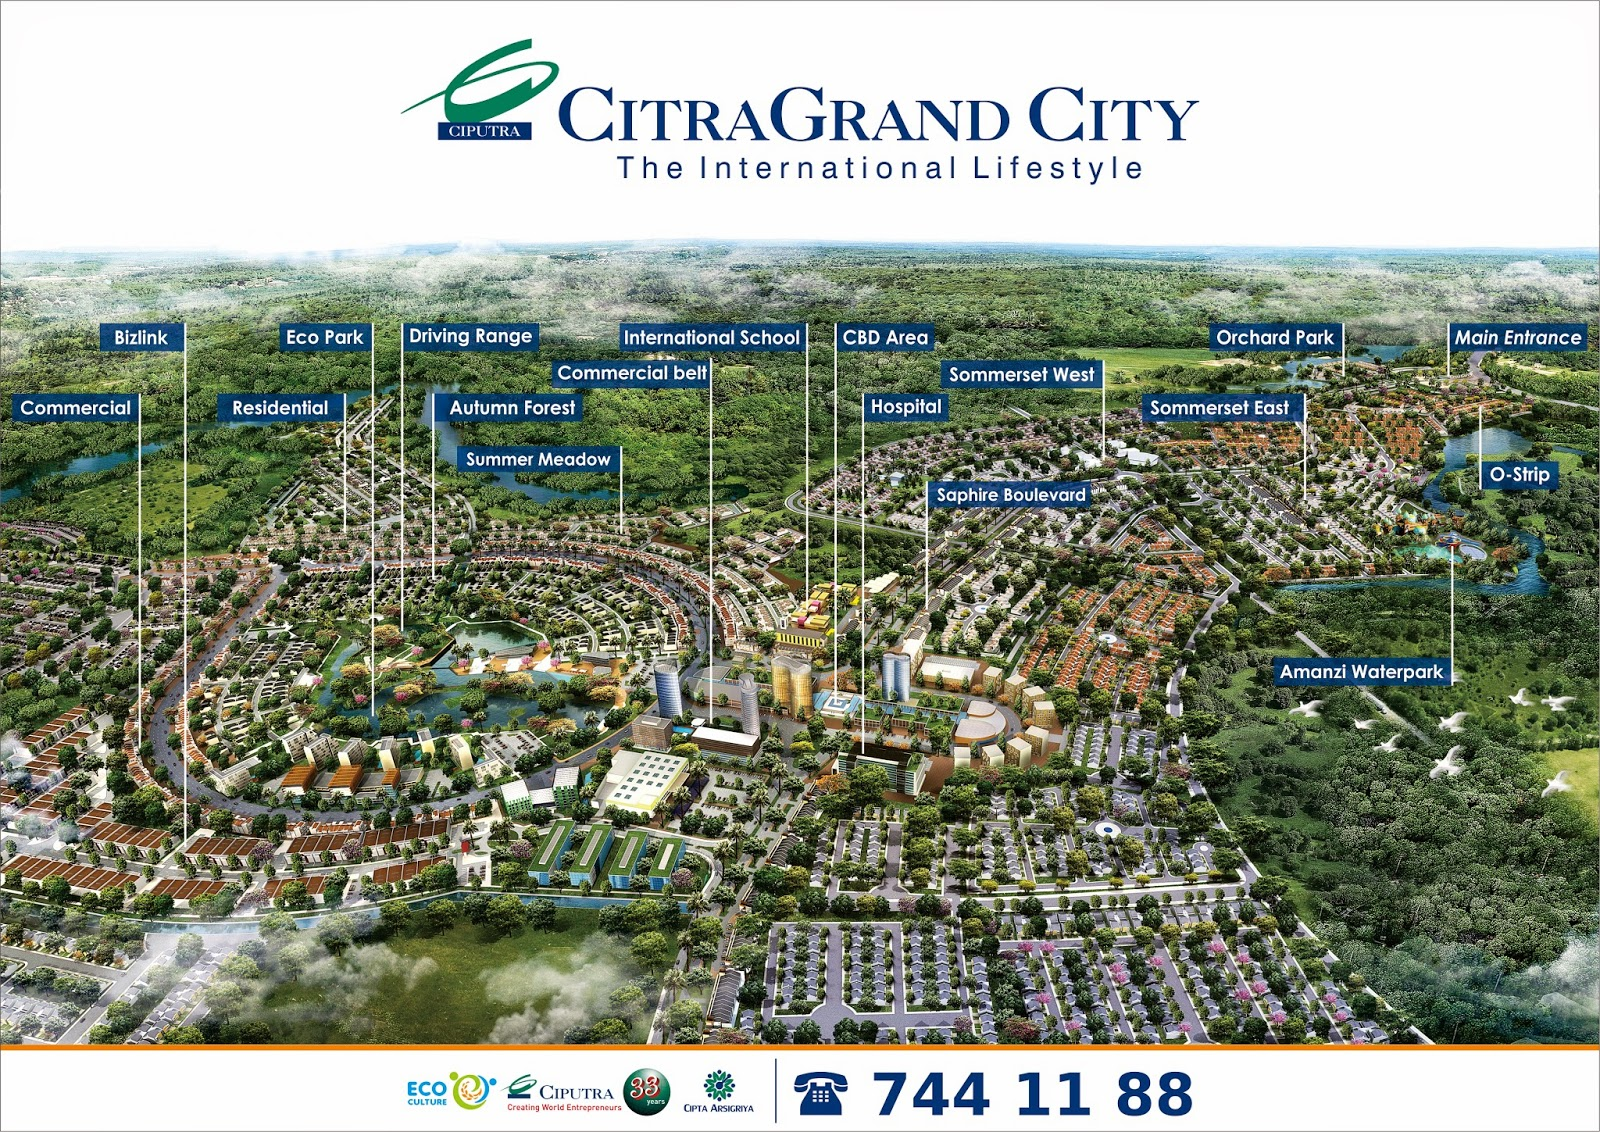 Citra Grand City Palembang Taman Air Amanzi Kota